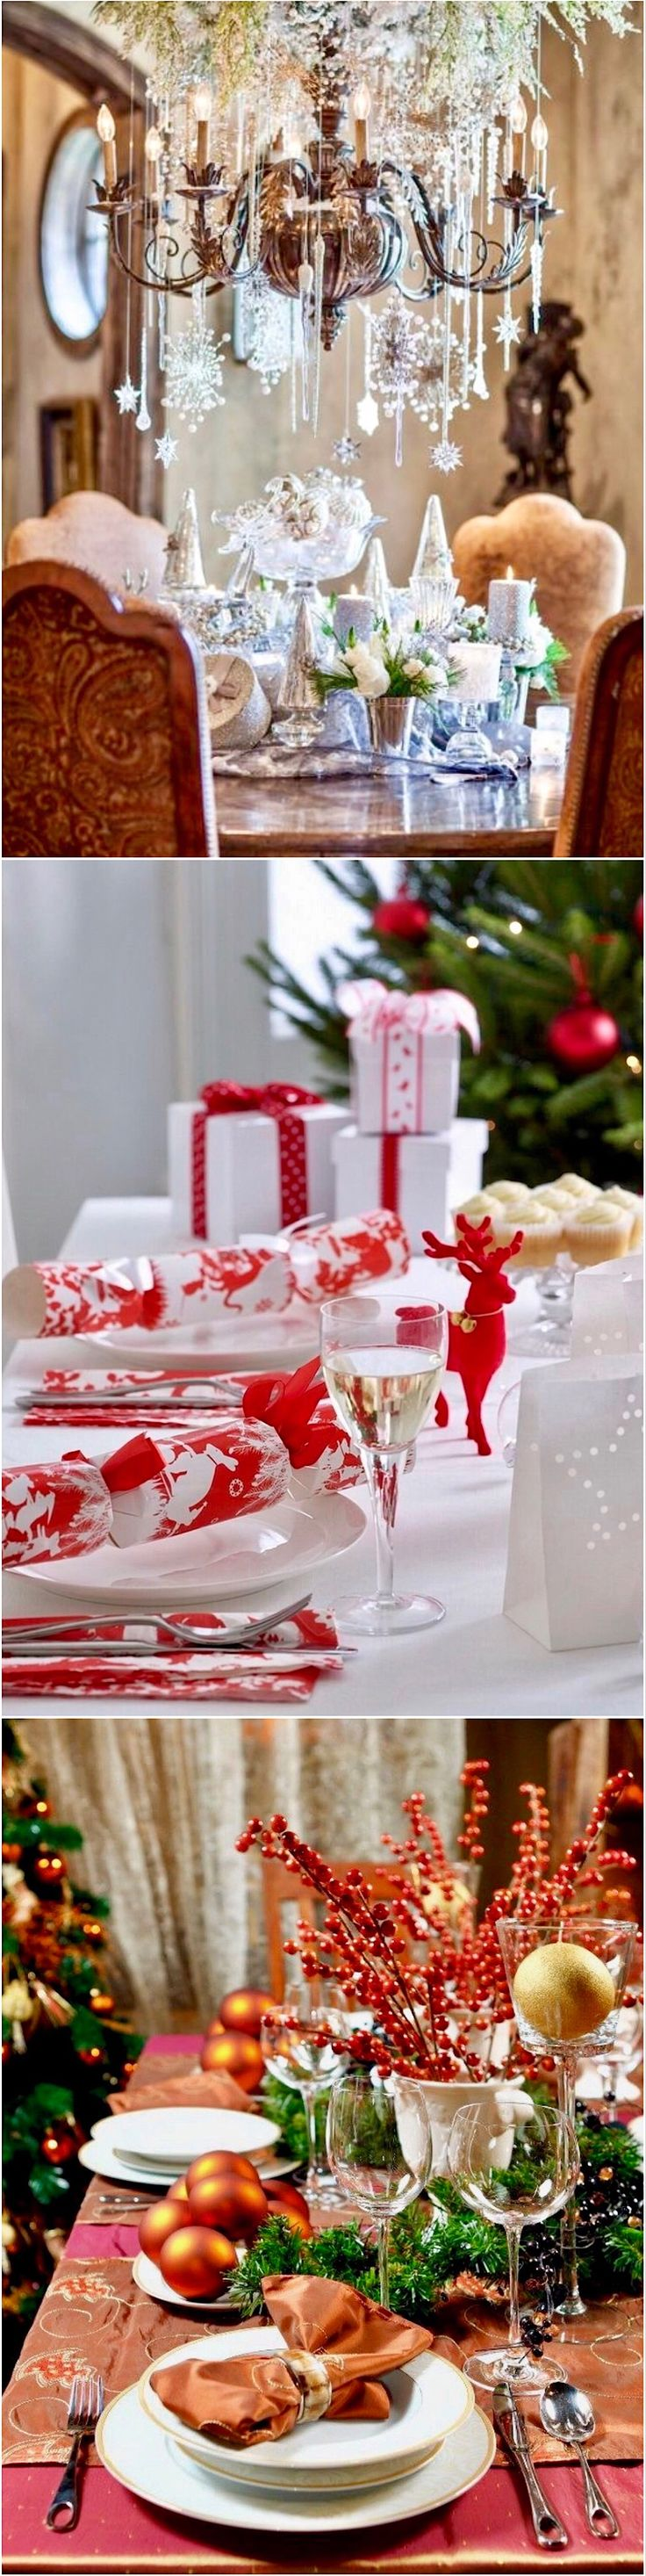 top 150 christmas table decorating ideas - Christmas Table Decorating